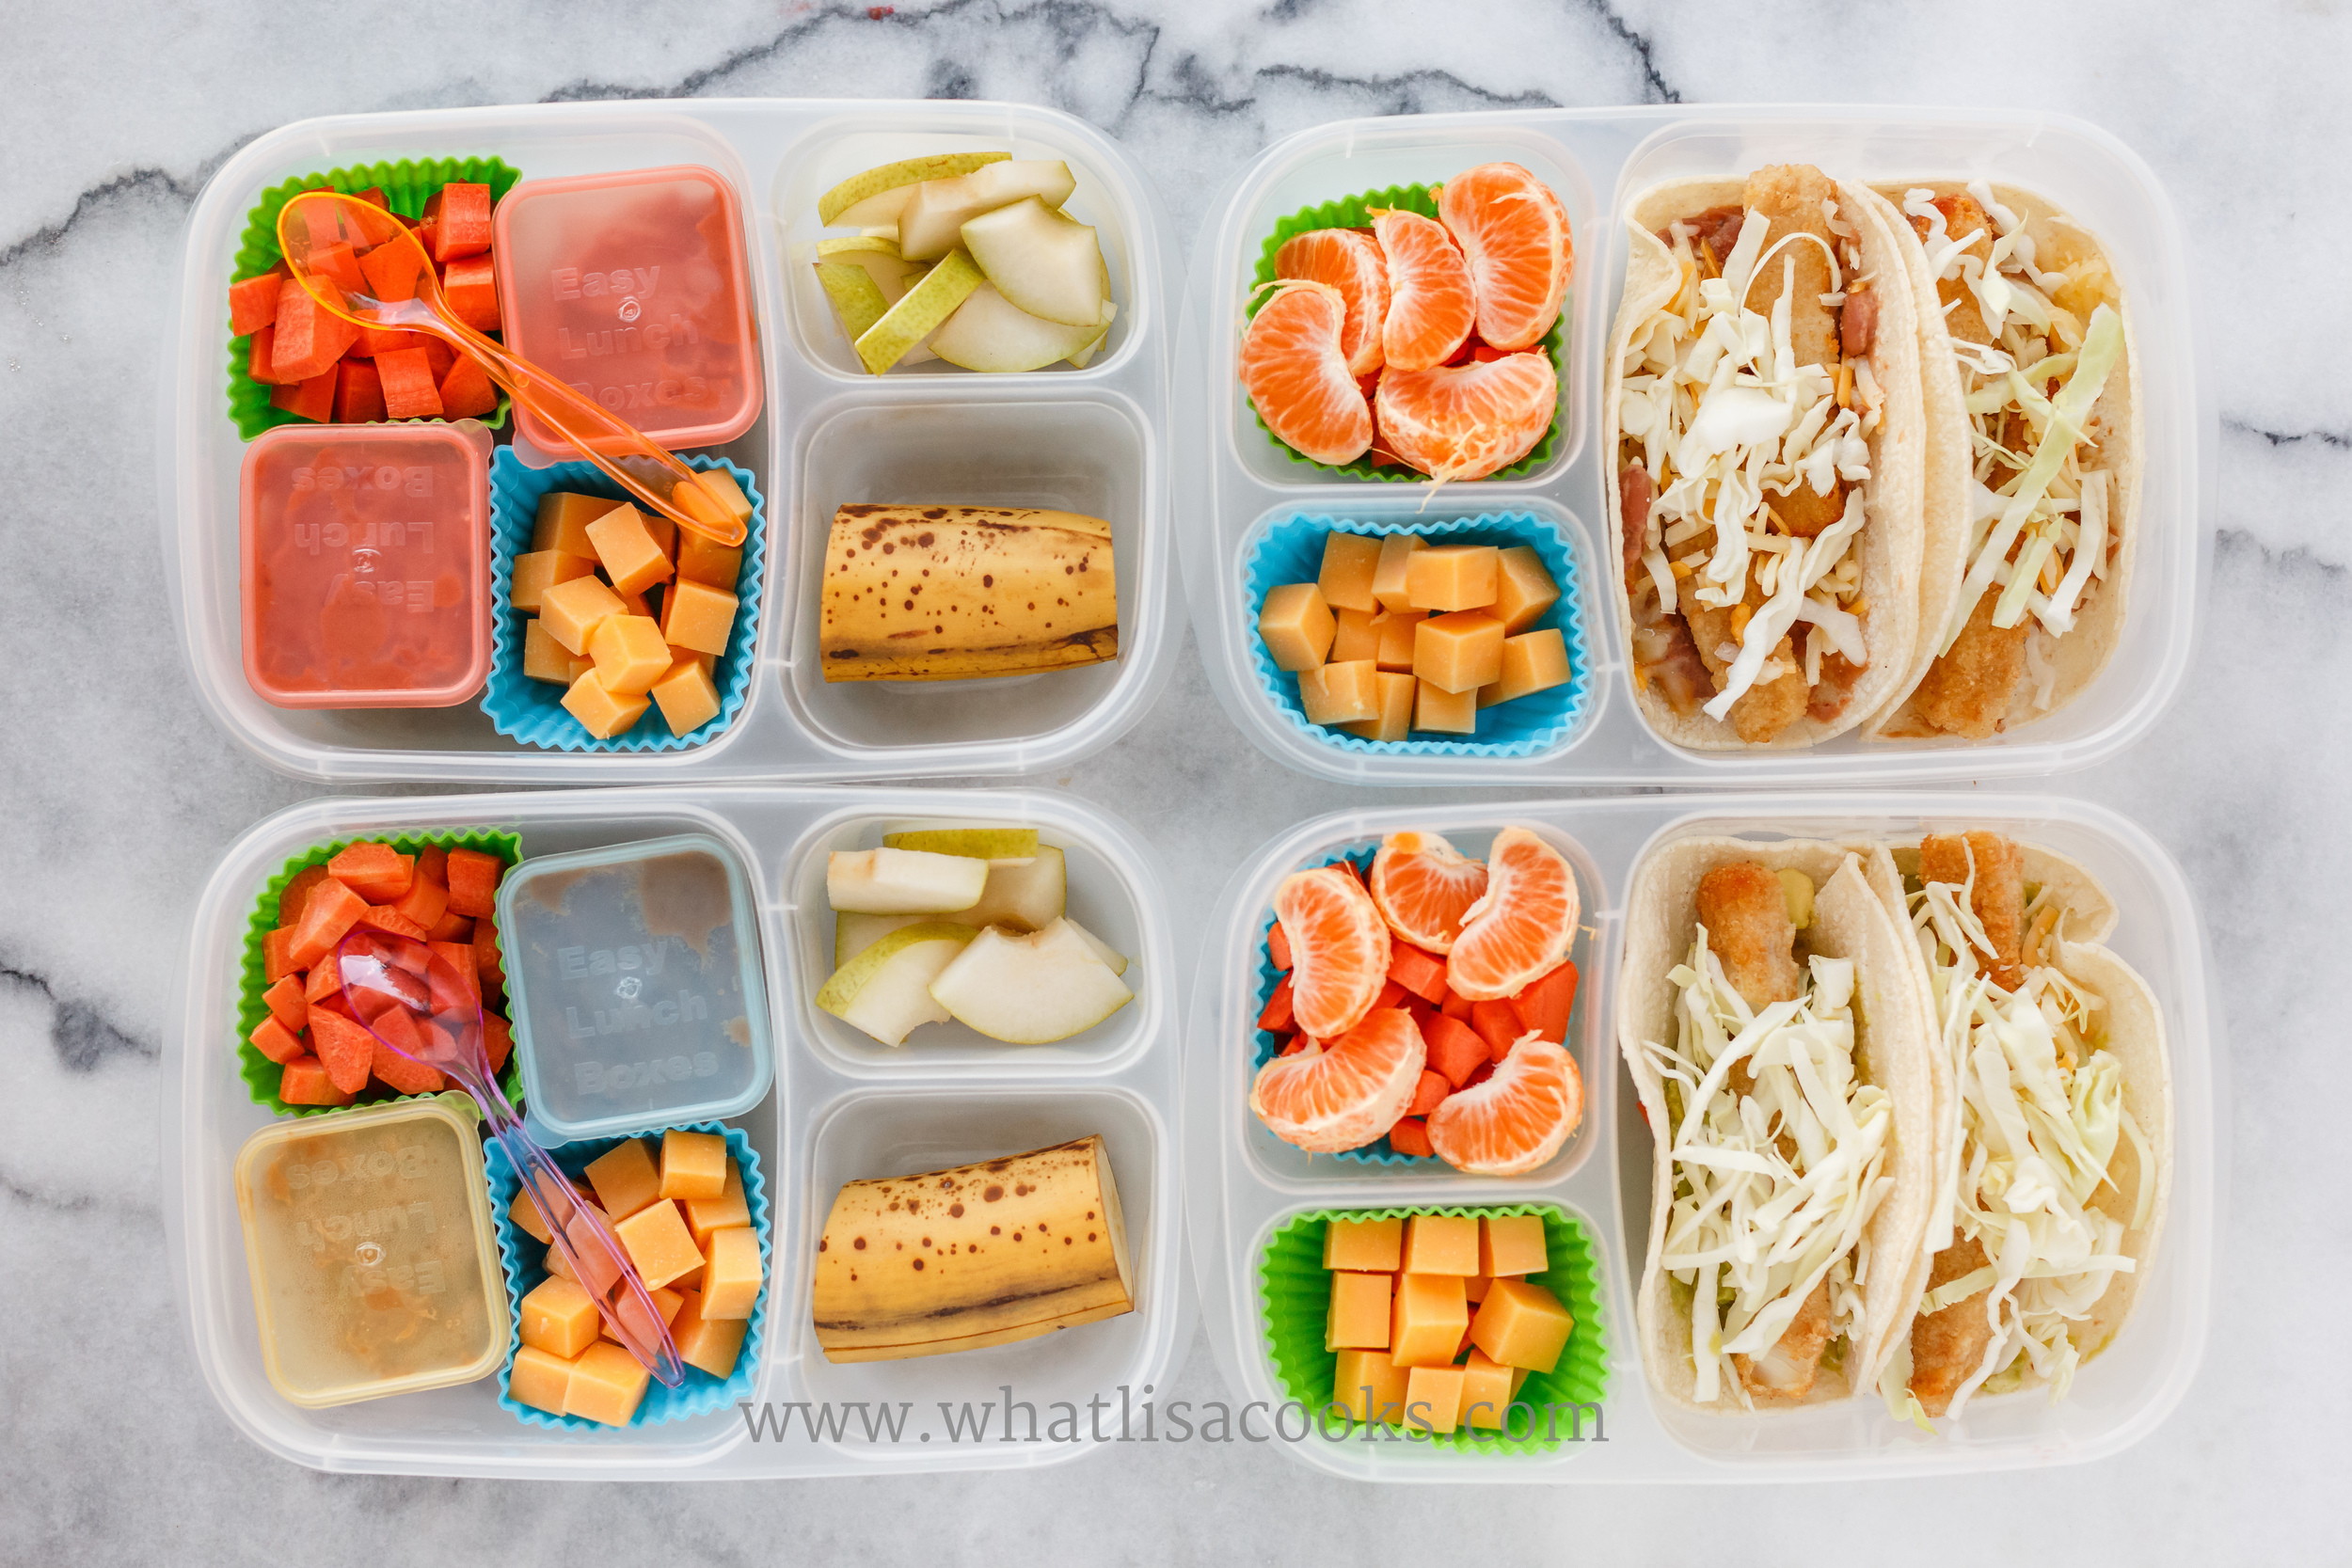 The two on the left here are grain free: refried beans, carrots, cheese, pear, and banana. The two on the right could be gluten free if you used fish that wasn't breaded and made sure to buy tortillas that were just corn: fish tacos with shredded cheese and cabbage, carrots, oranges, cheese.